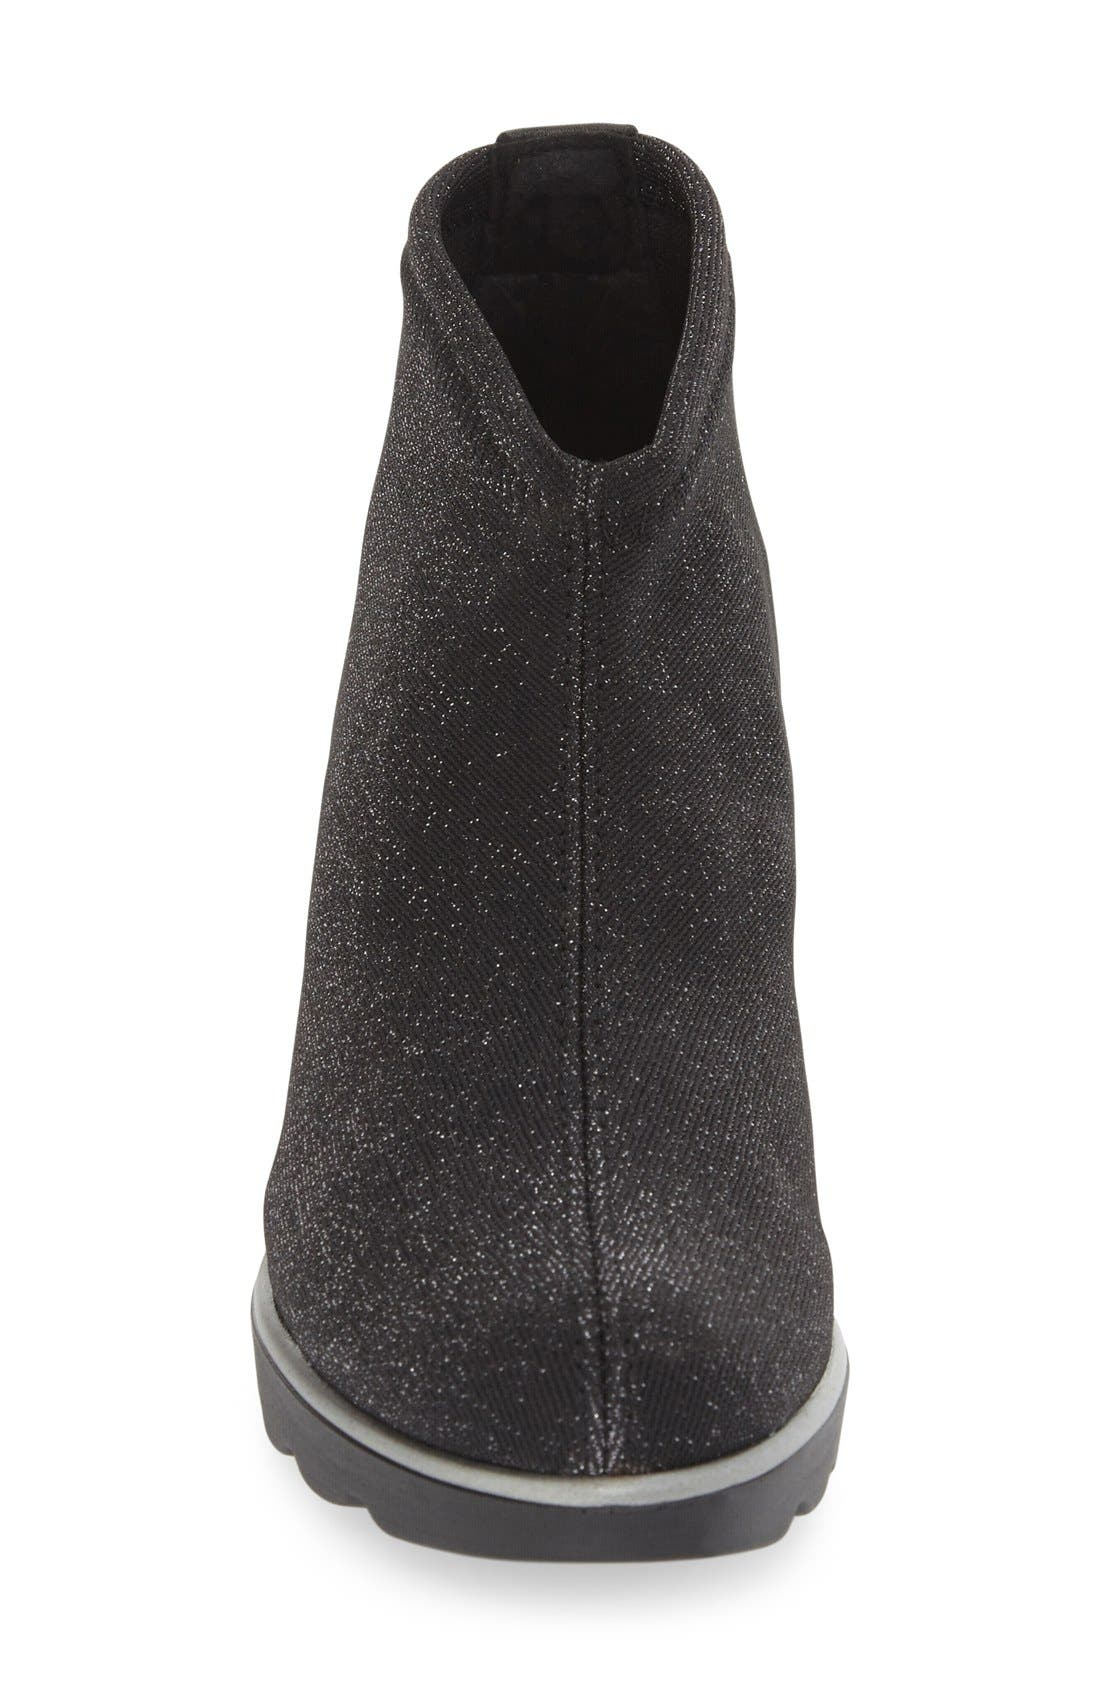 'Baltic' Wedge Bootie,                             Alternate thumbnail 3, color,                             001